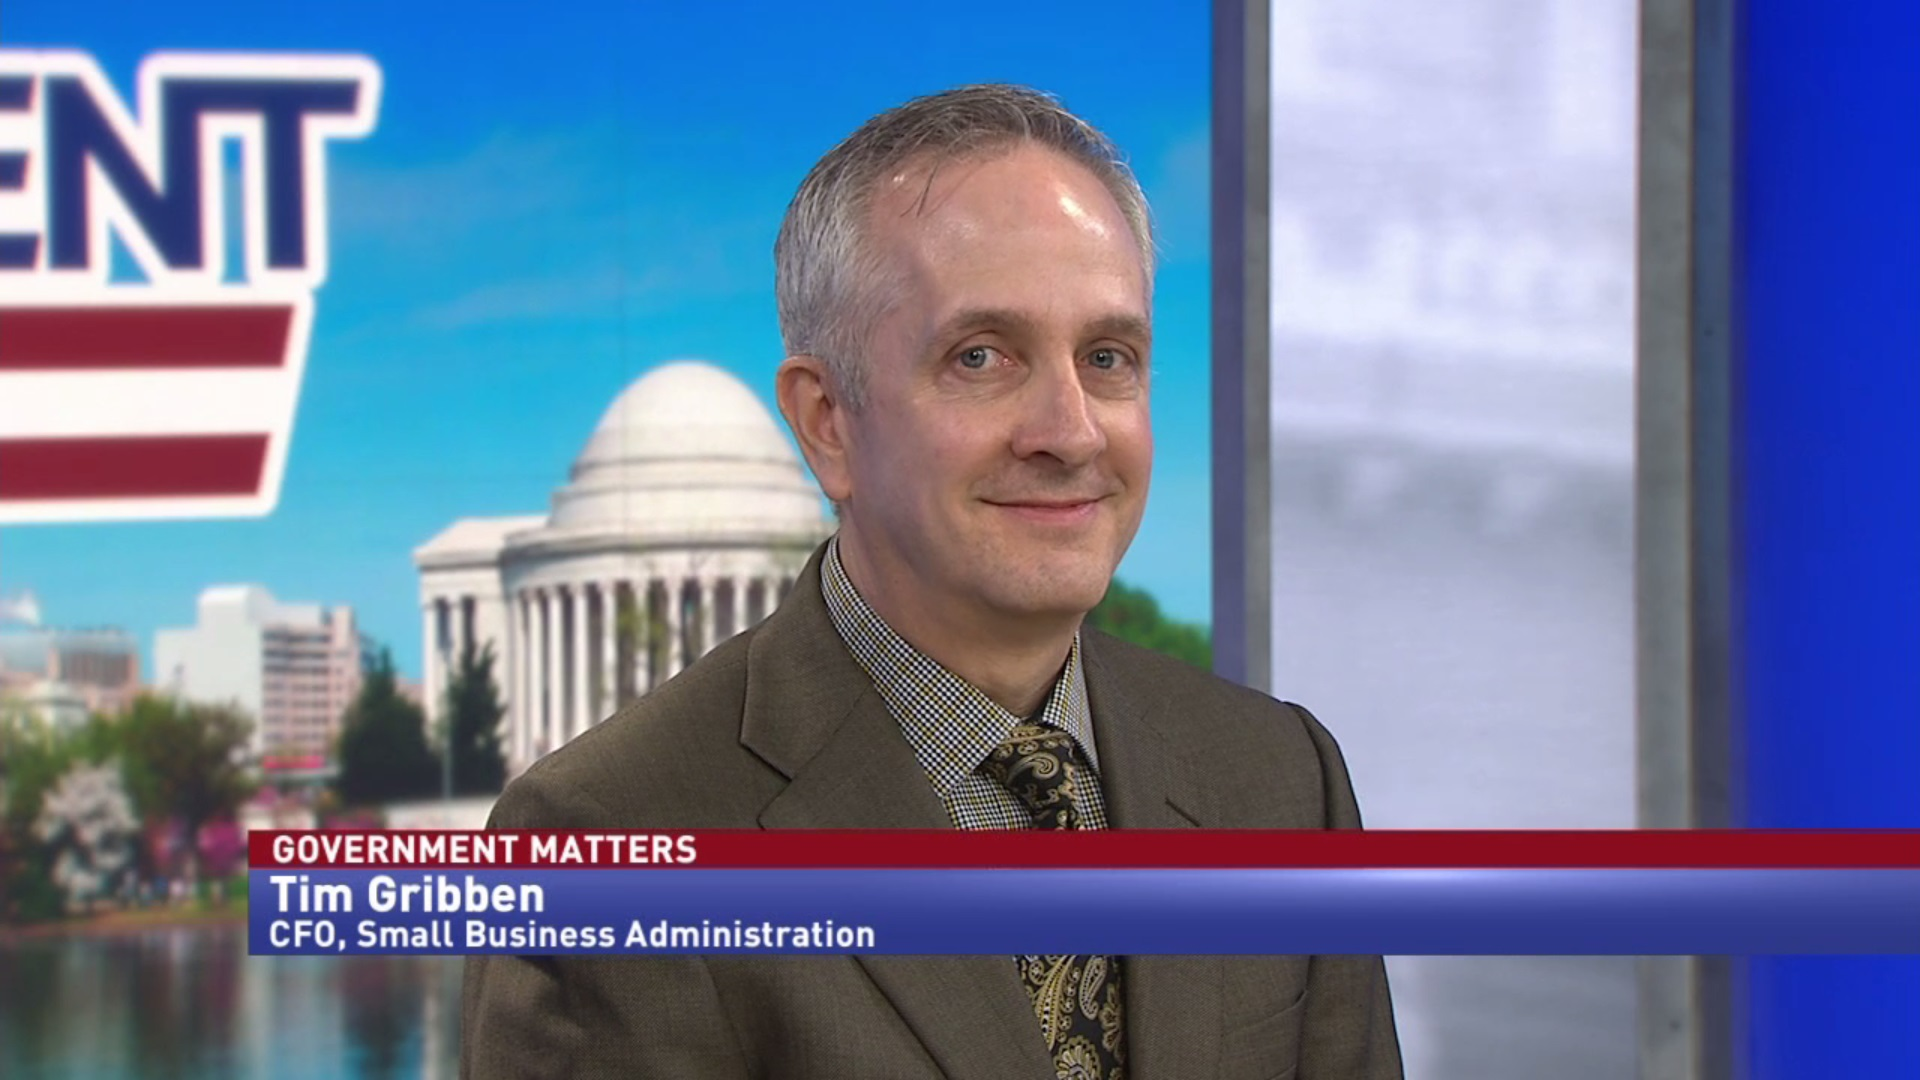 Financial priorities at the Small Business Administration